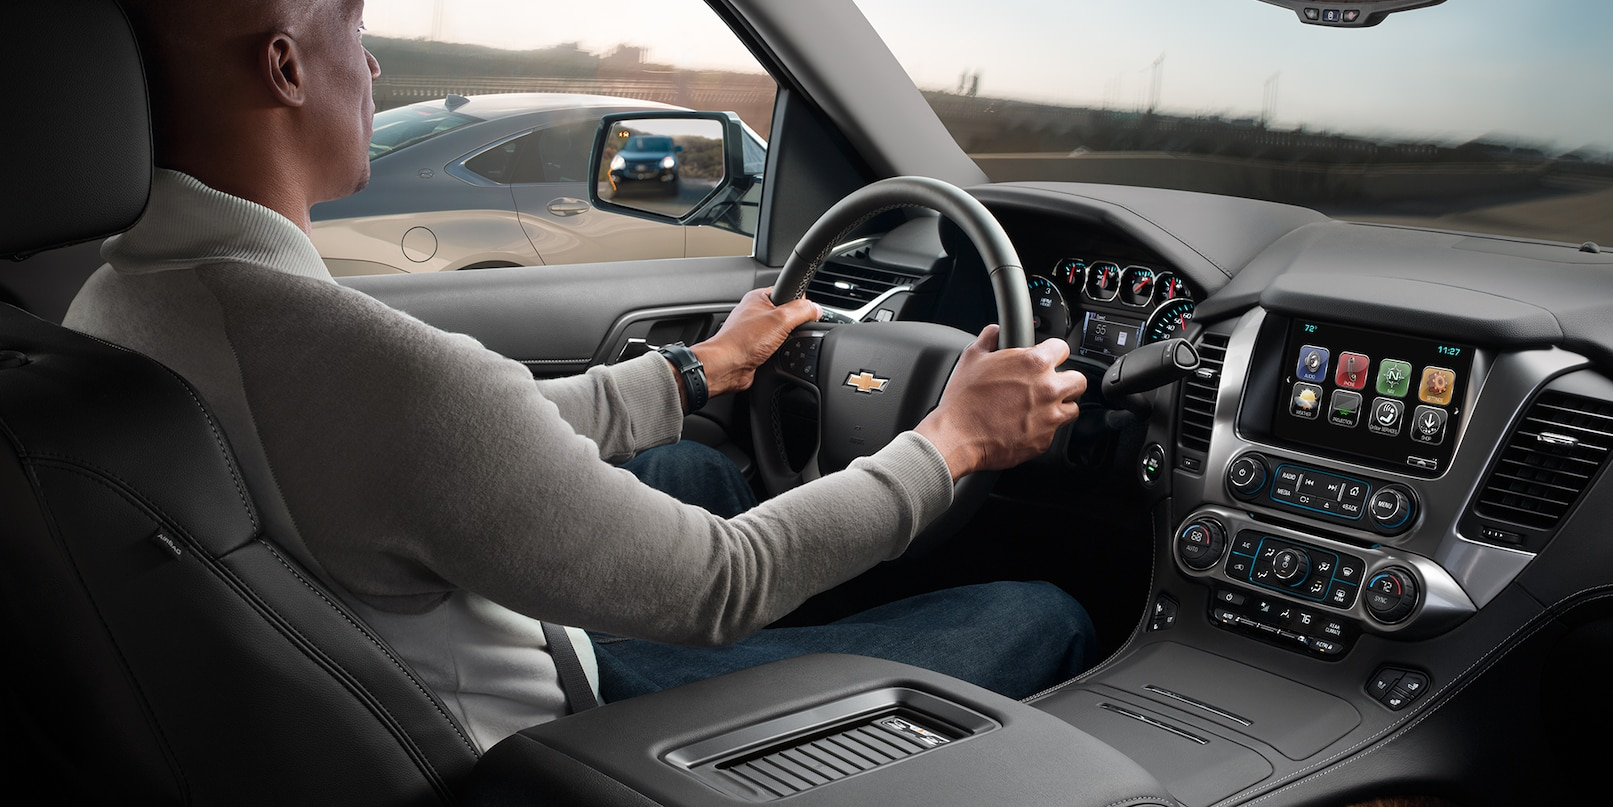 You'll Love Driving in the Chevy Tahoe!